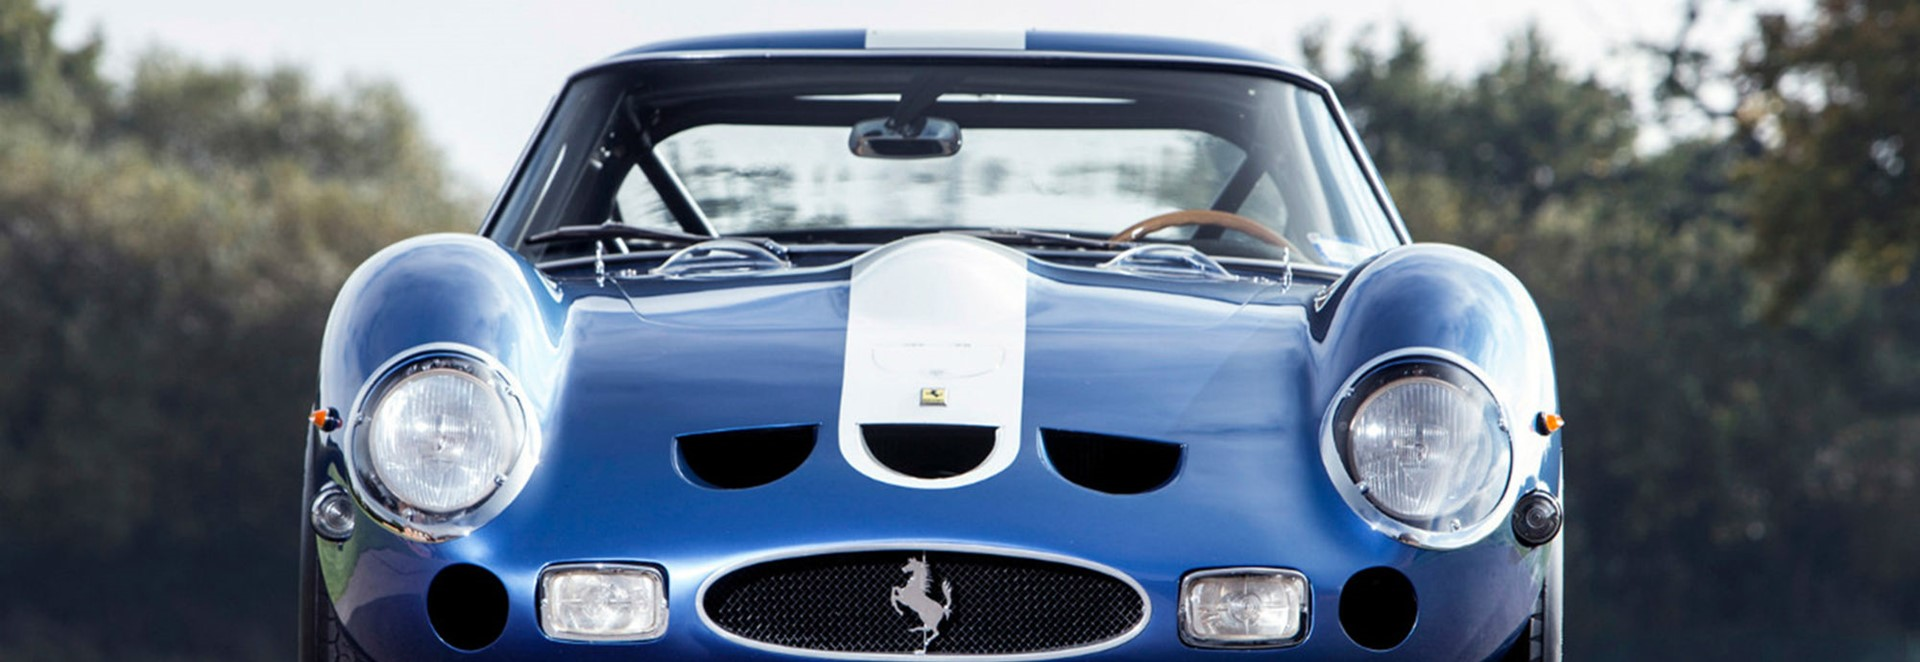 This Ferrari 250 GTO is set to become the world's most expensive car